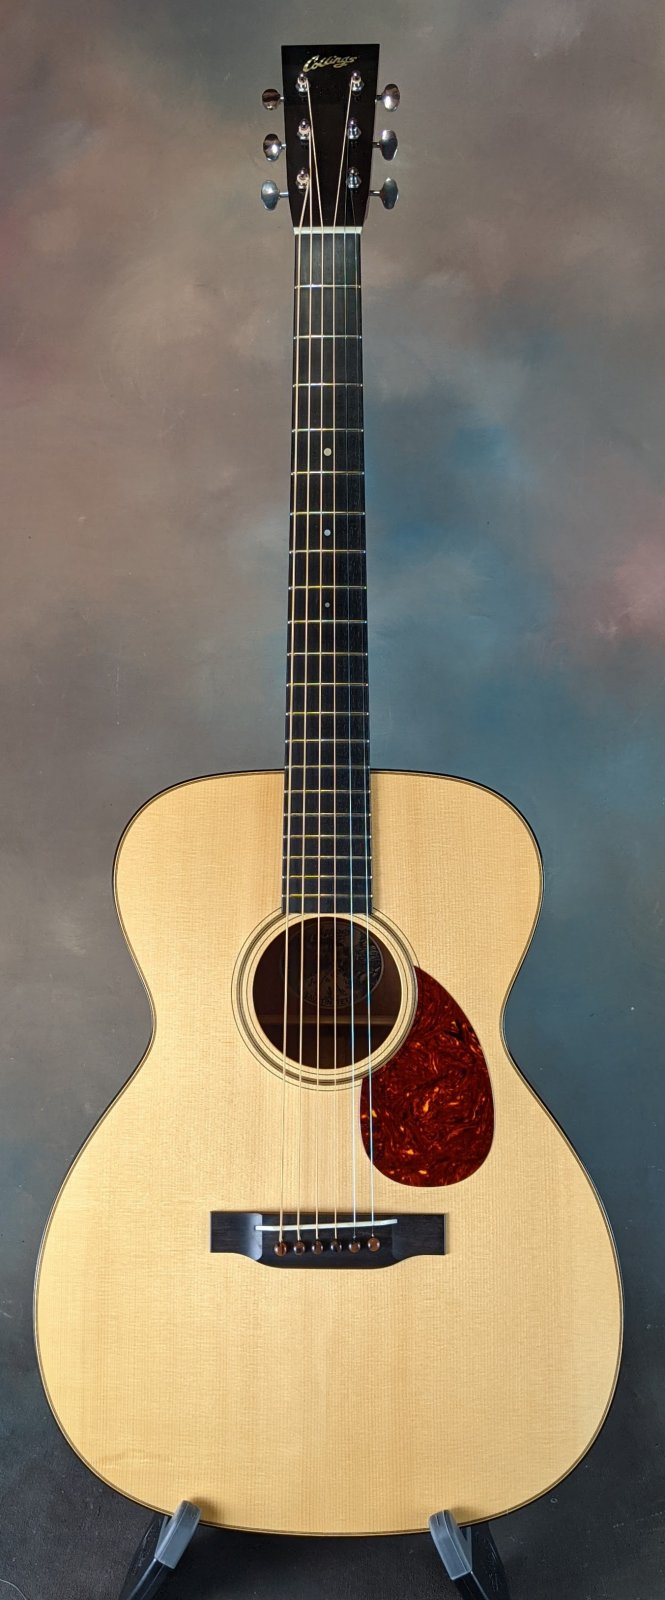 2016 Collings OM1A-T Traditional Series - Collings Original Case!